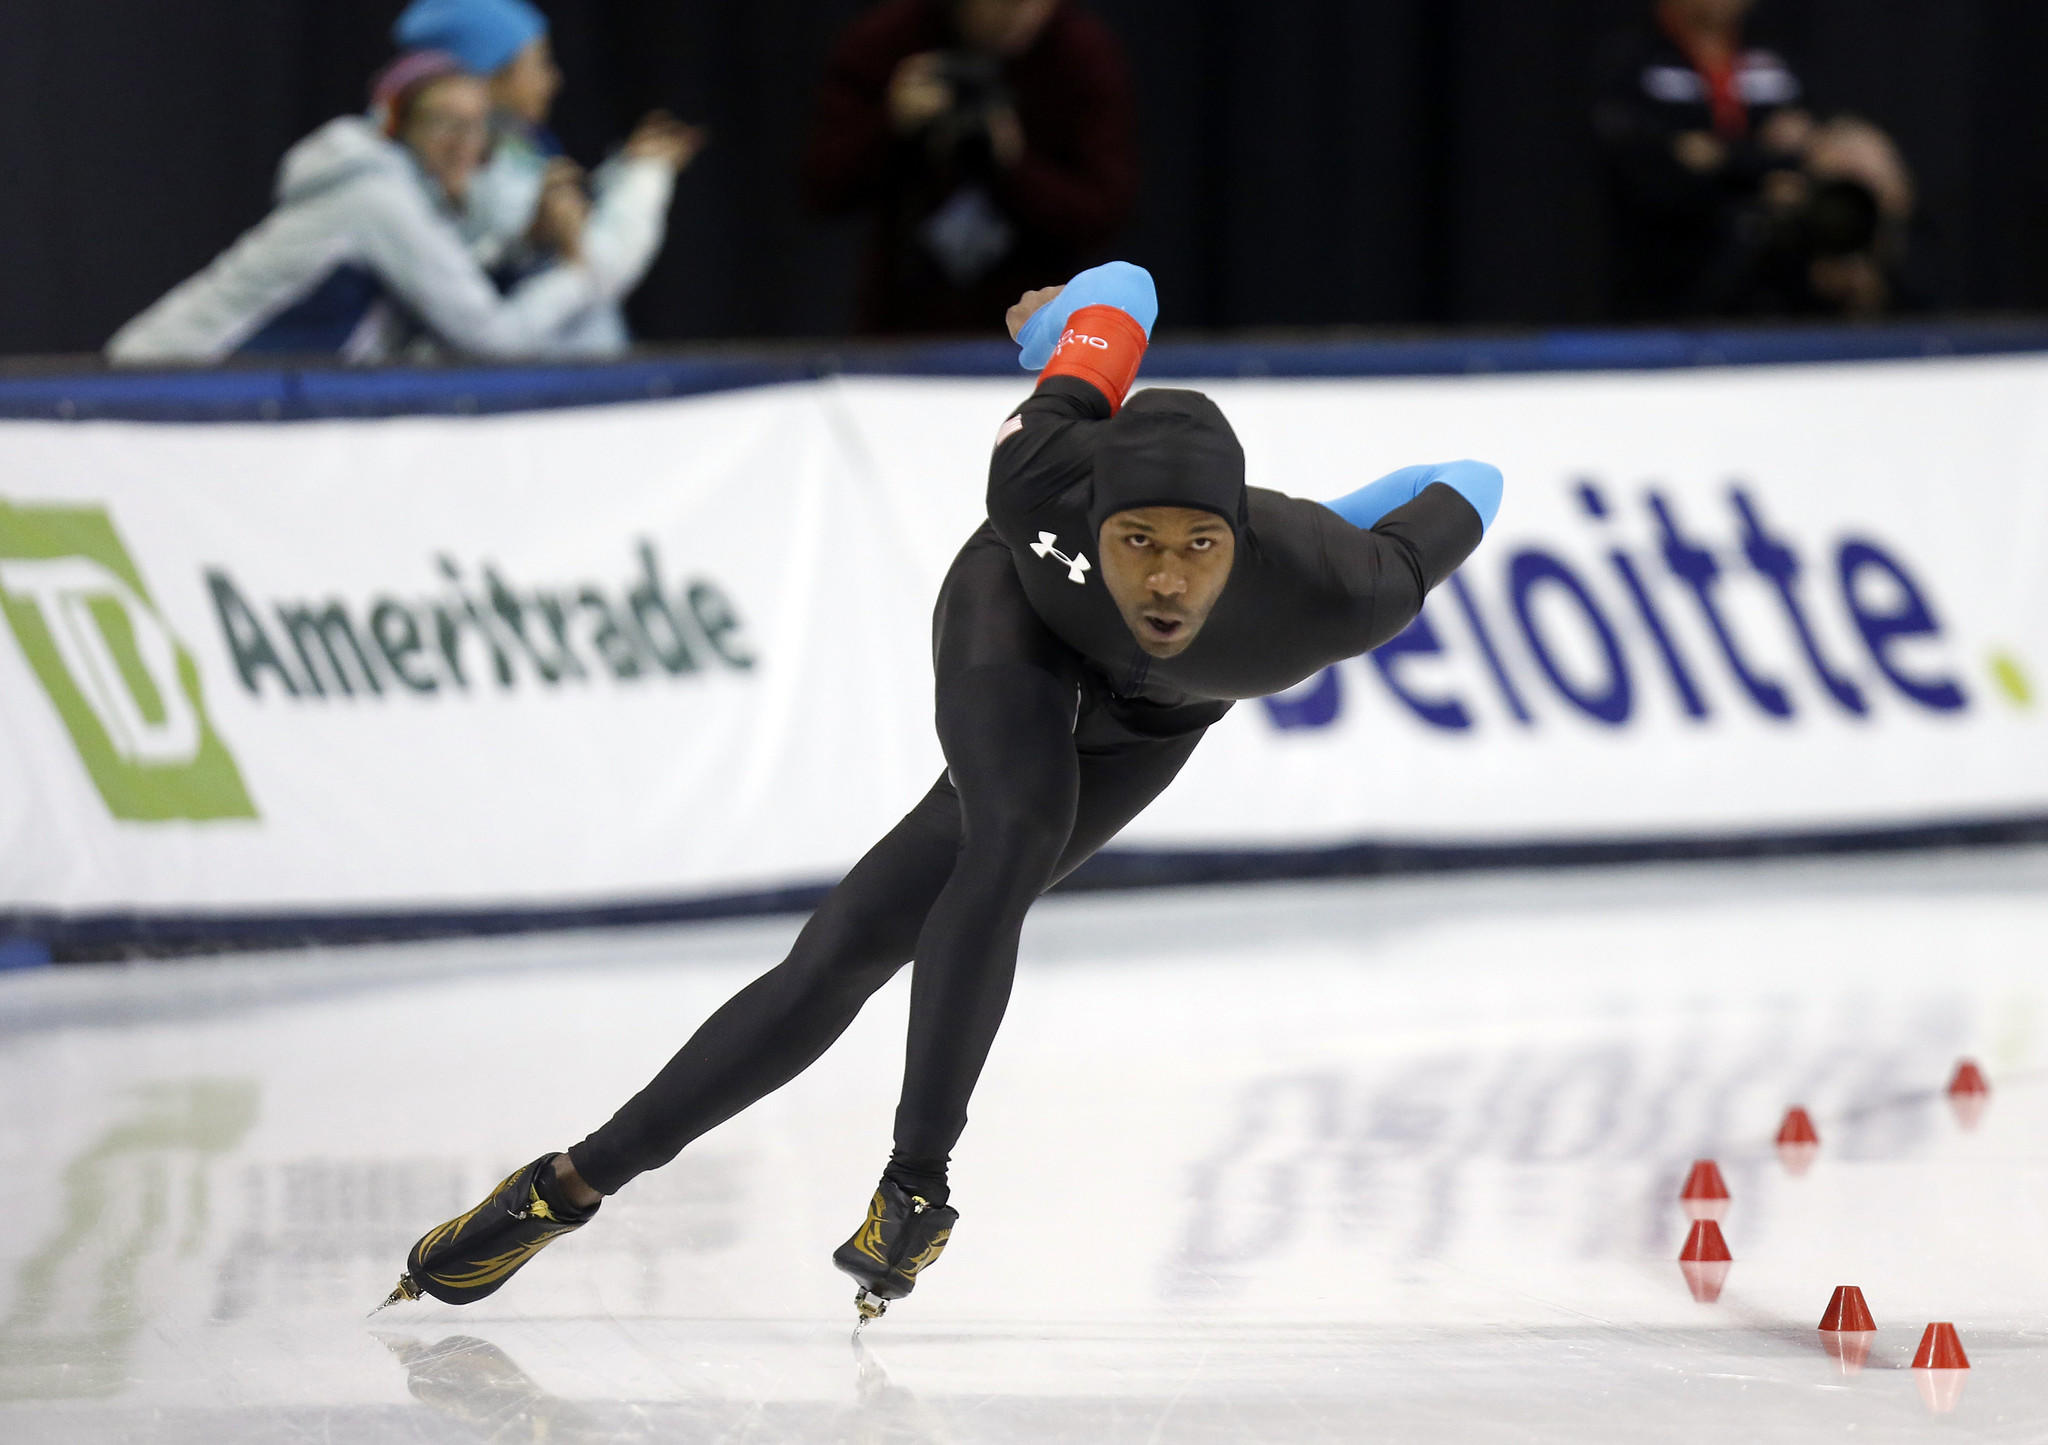 First place finisher Shani Davis competes in the men's 1500m during the U.S. Olympic speedskating trials at Utah Olympic Oval.